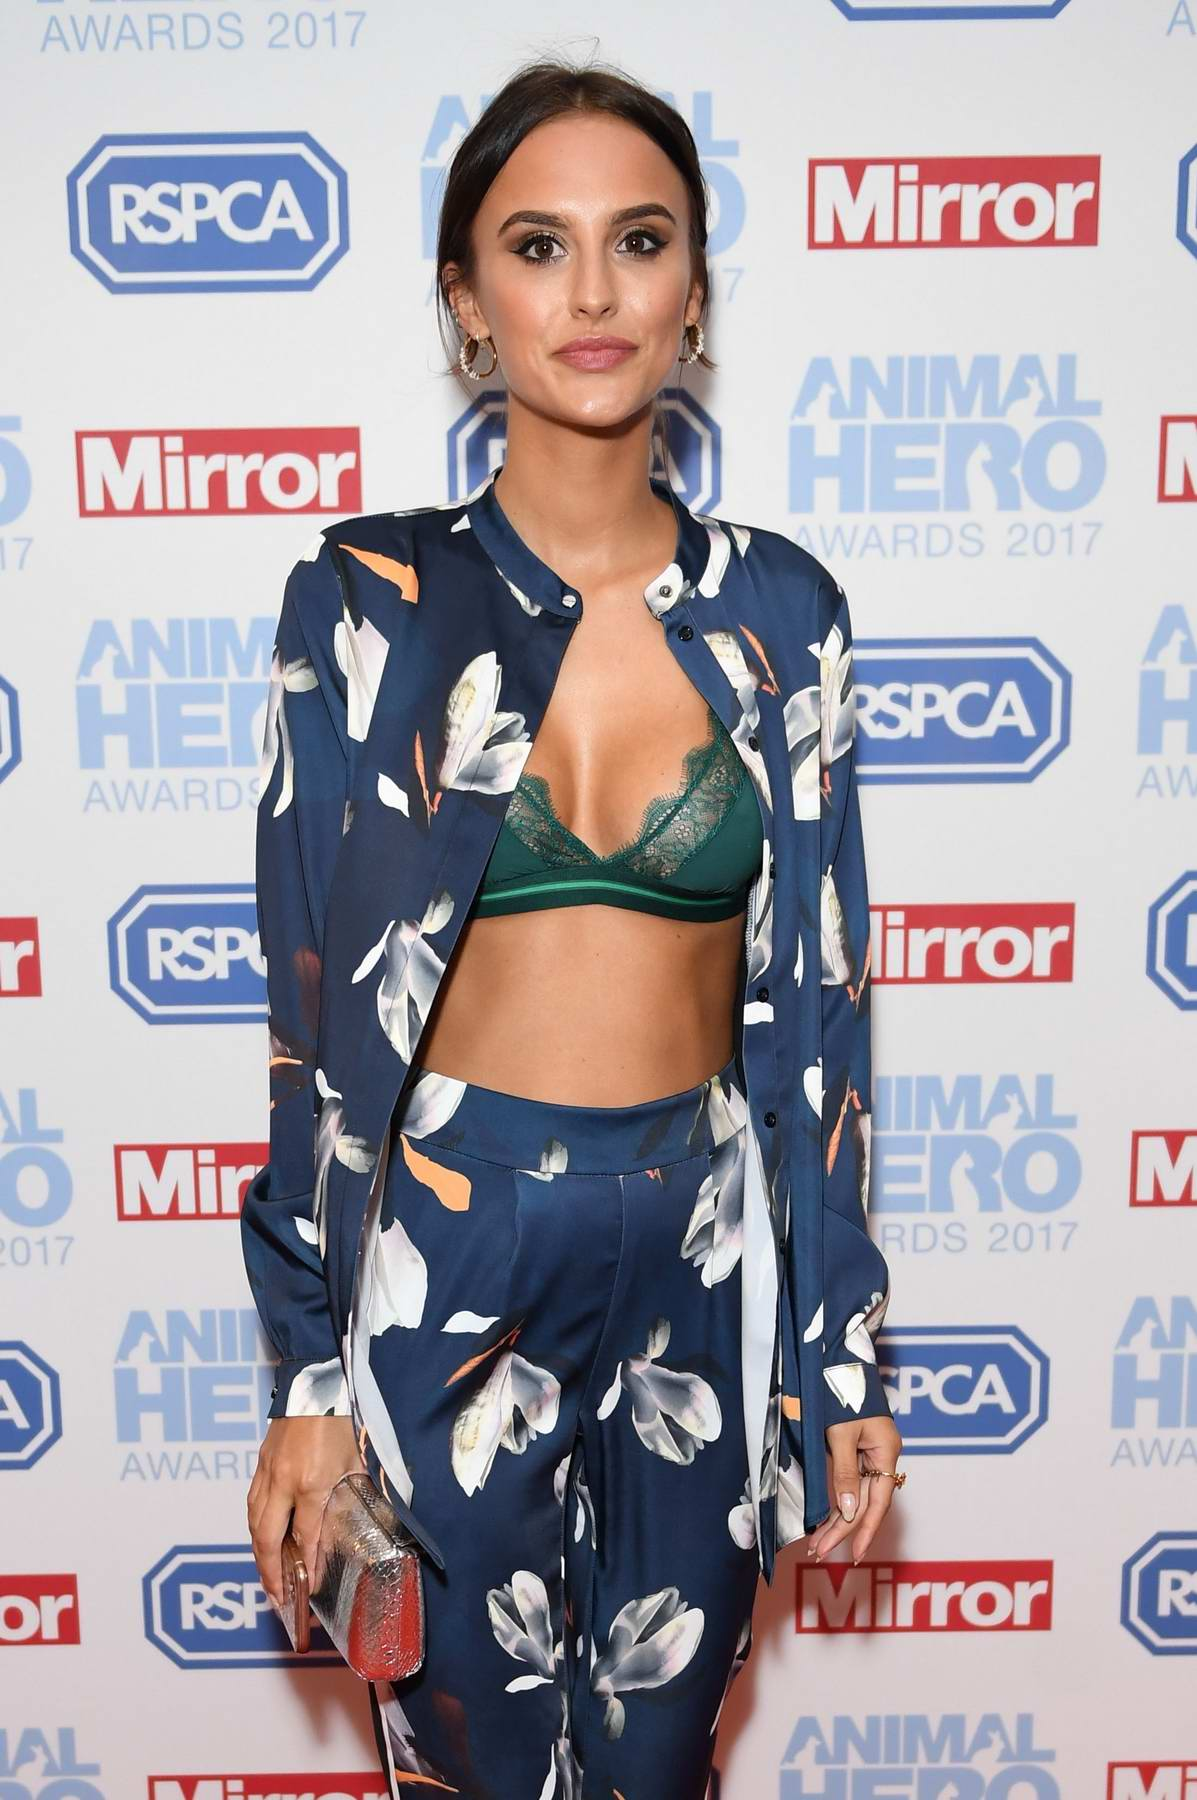 Lucy Watson at the Animal Hero Awards 2017 held at the Grosvenor House in Park Lane, London